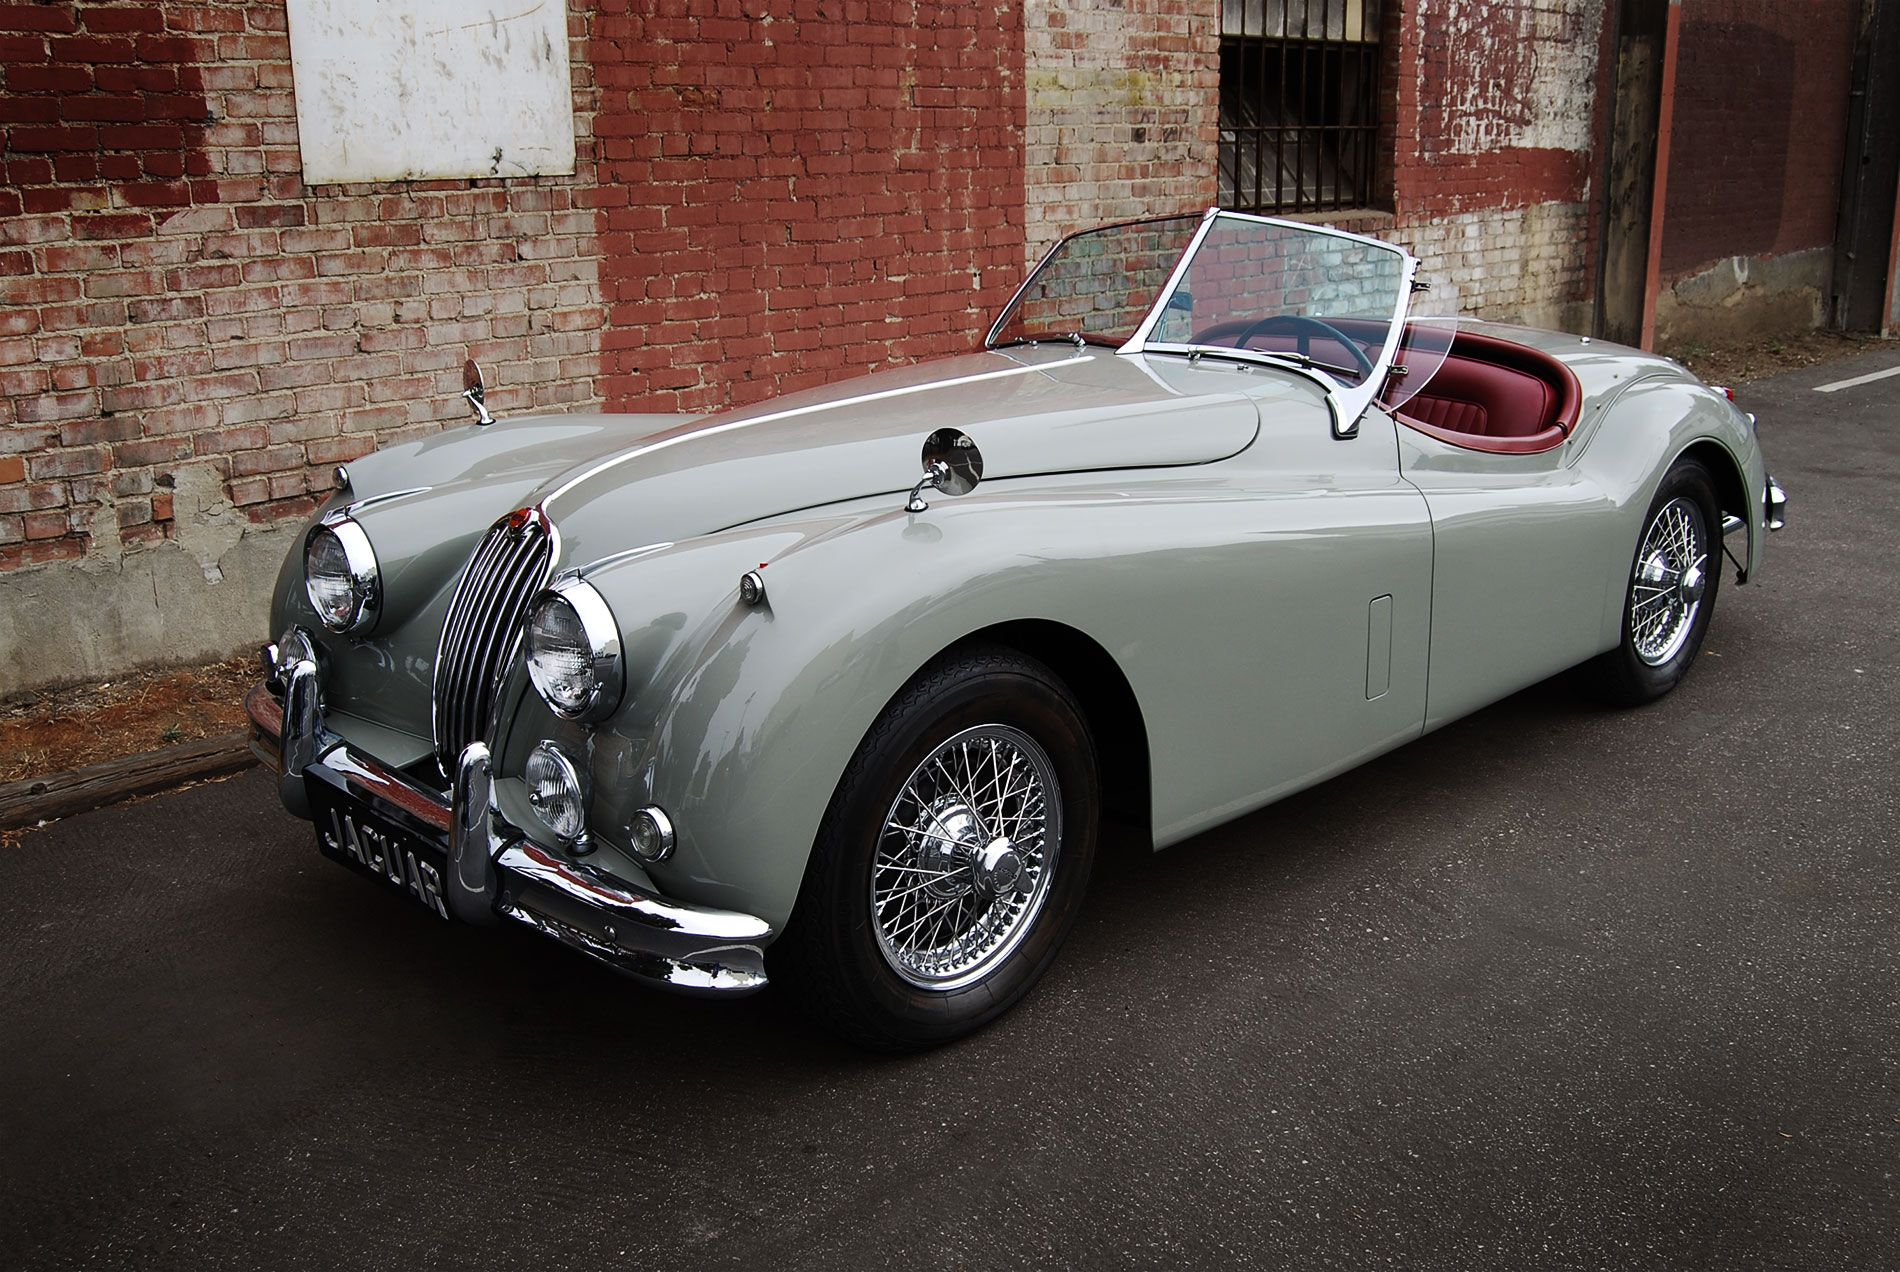 used xk condition united for sale restored wightbay in highly ny states jaguar southampton cowes